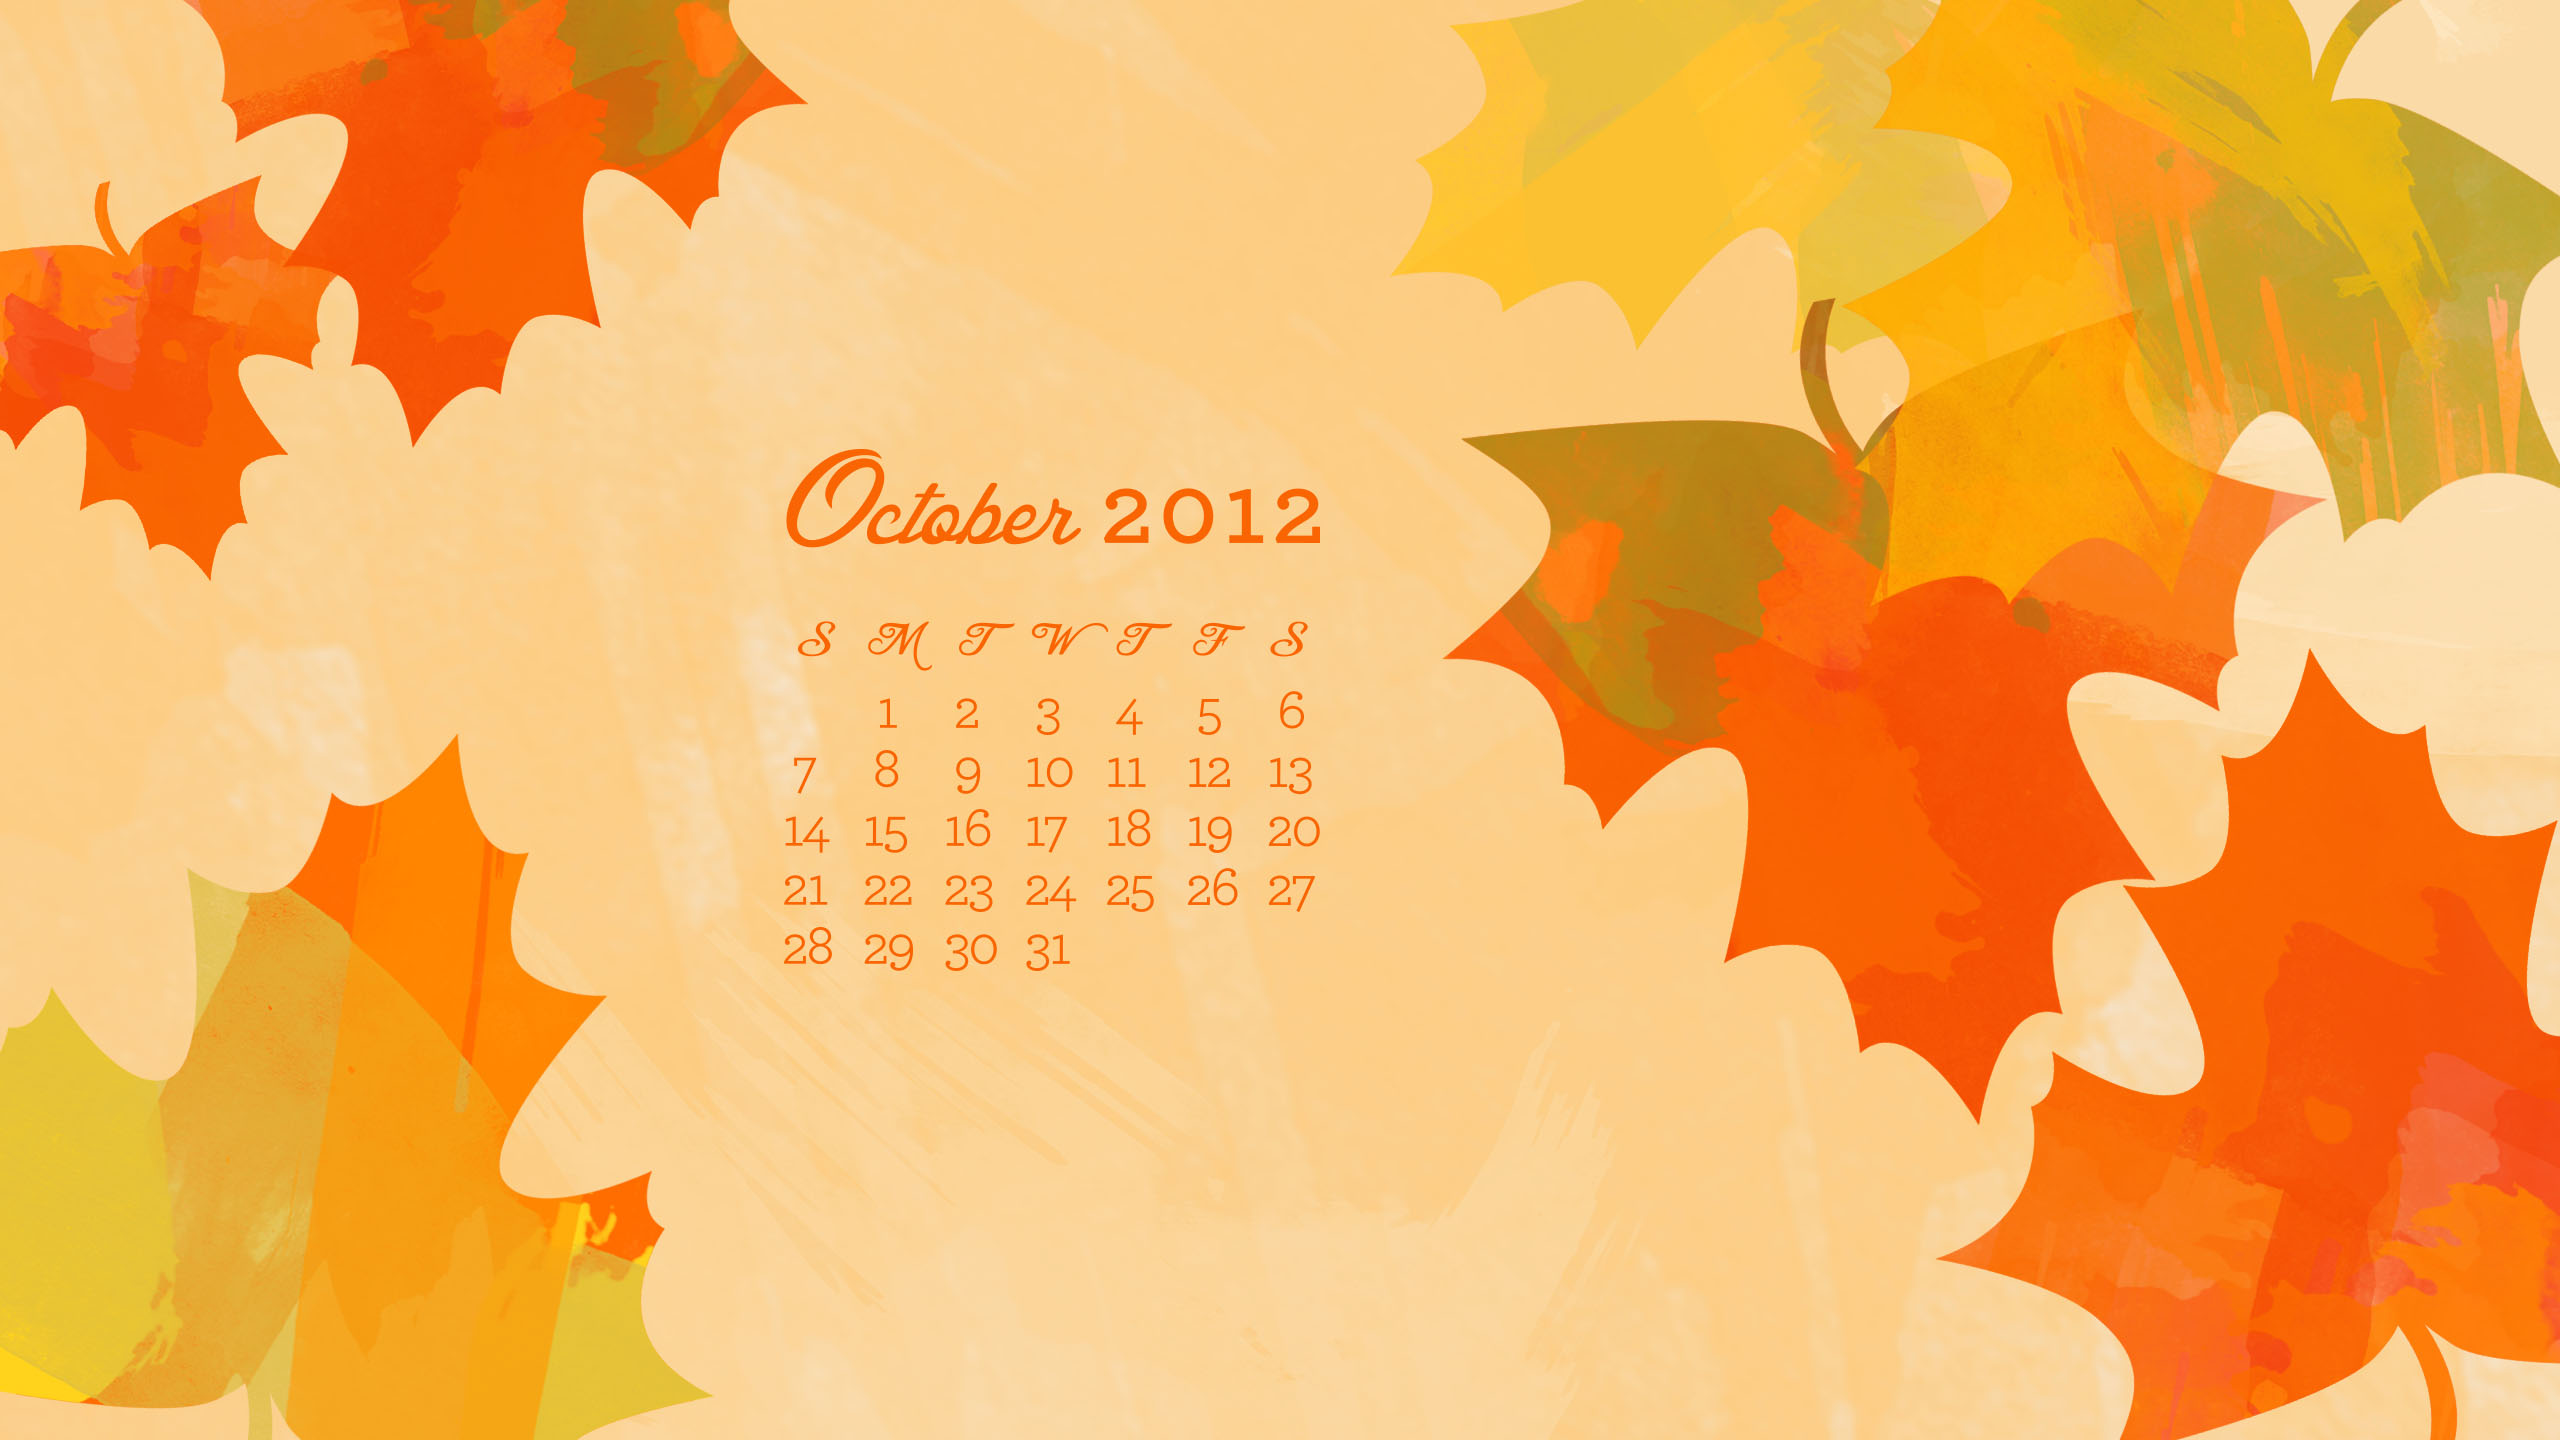 Calendar Wallpaper For Iphone : Sarah hearts october desktop iphone ipad